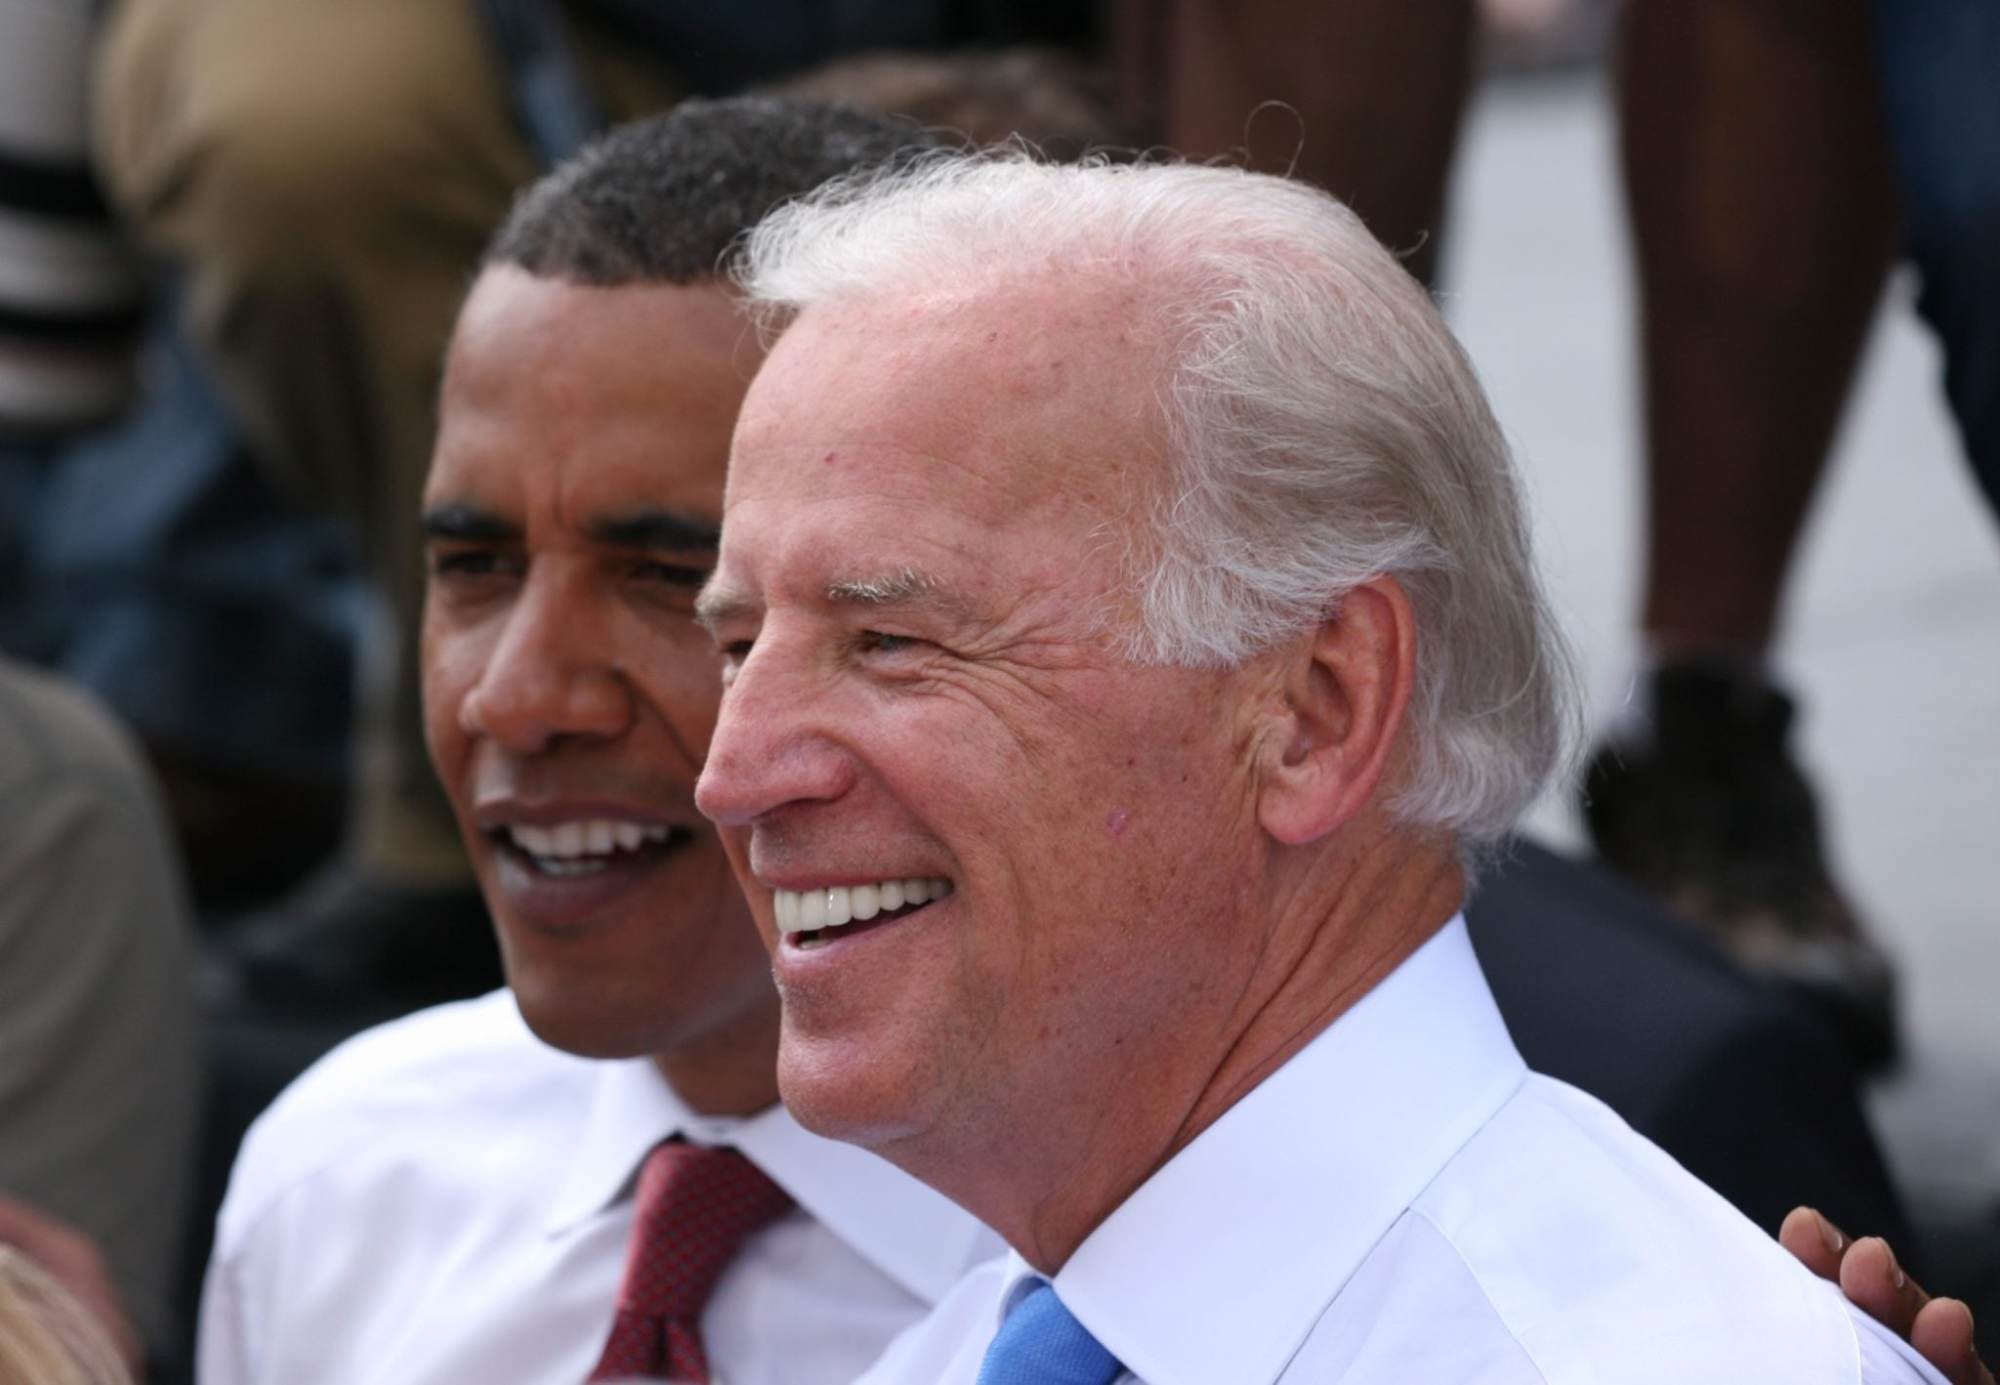 Rendell: Biden's Lengthy Record Is Not Problem for His Candidacy